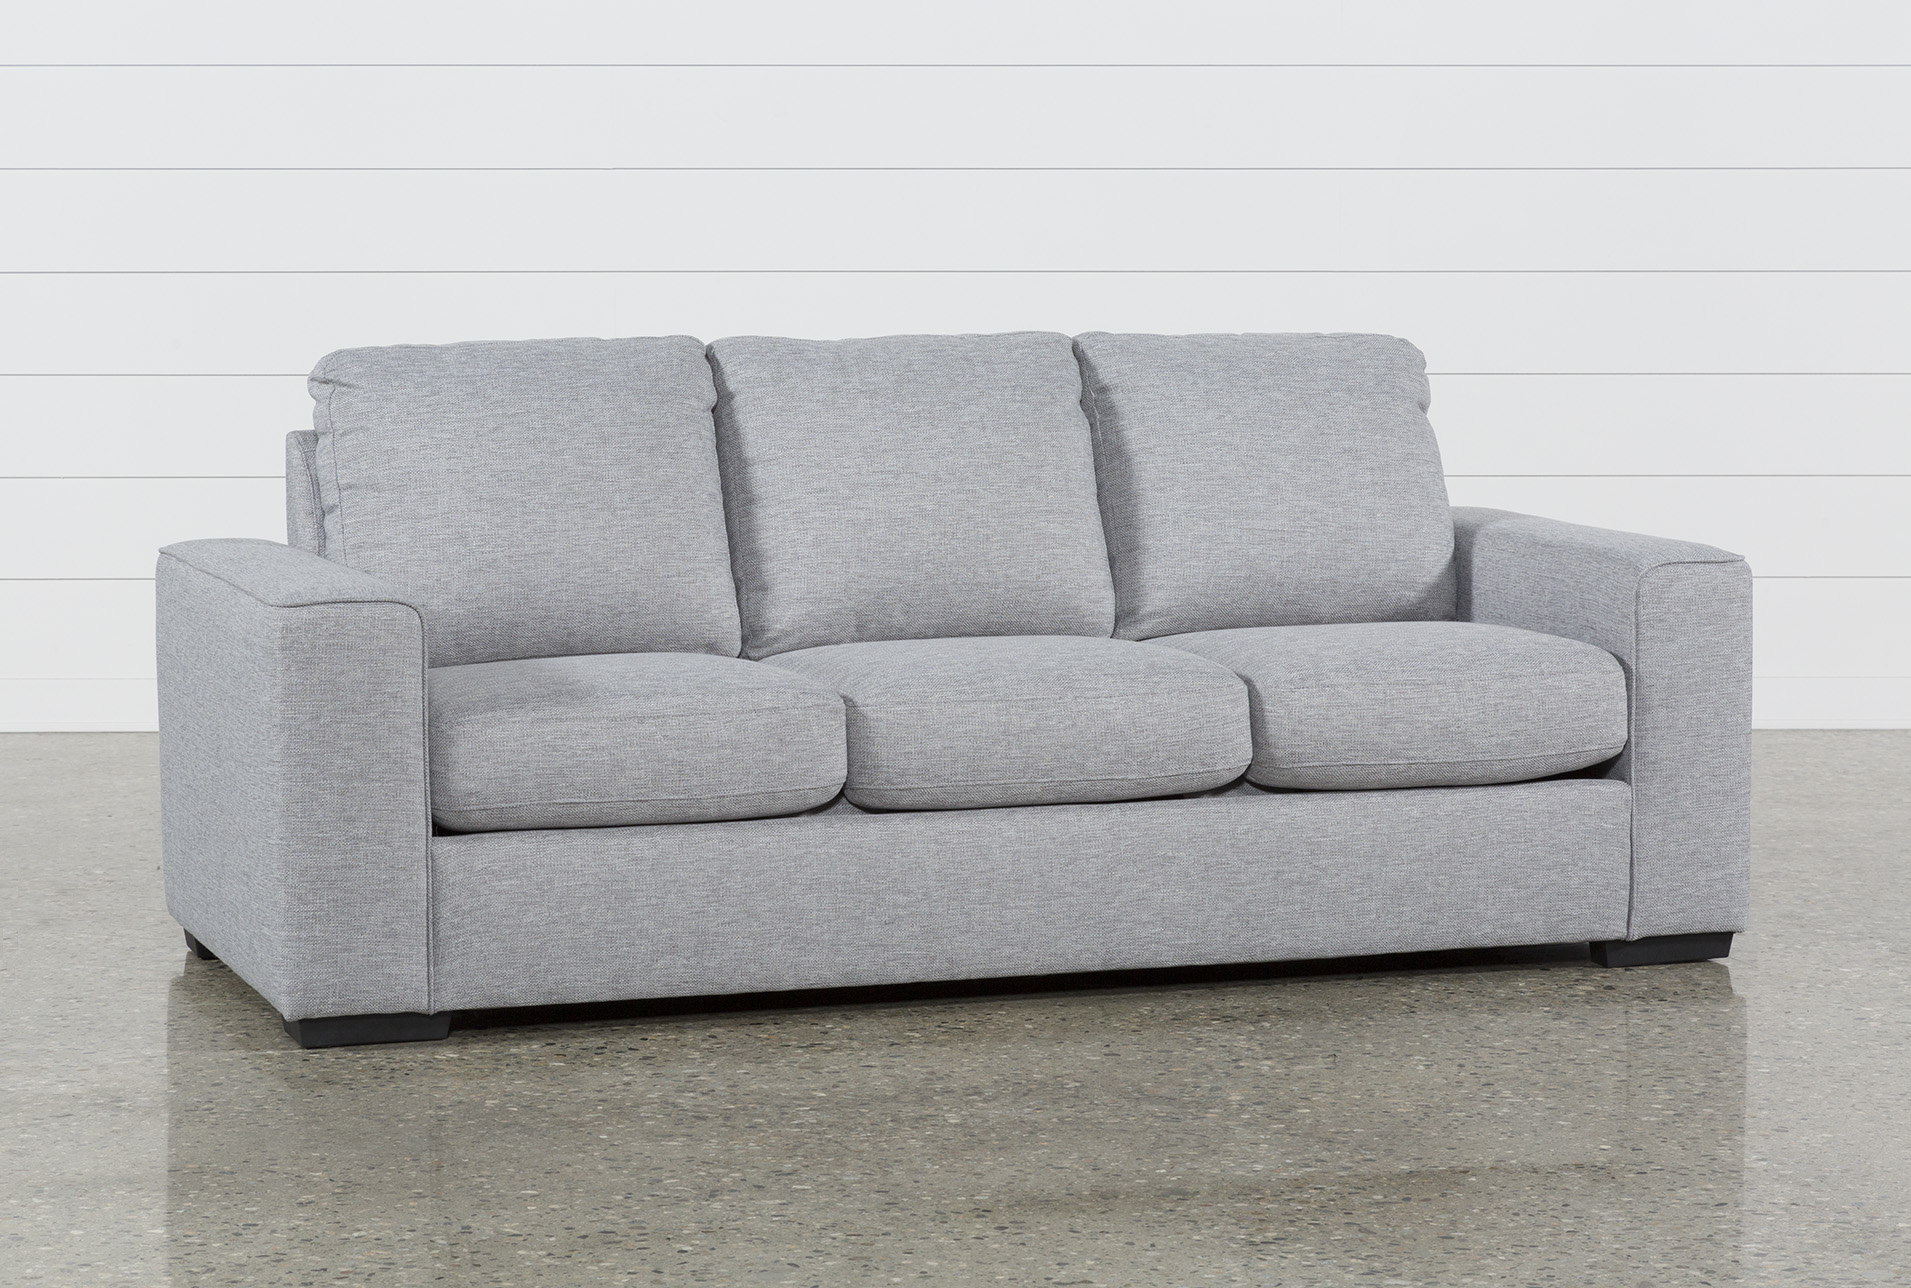 Good Lucy Grey Sofa (Qty: 1) Has Been Successfully Added To Your Cart.